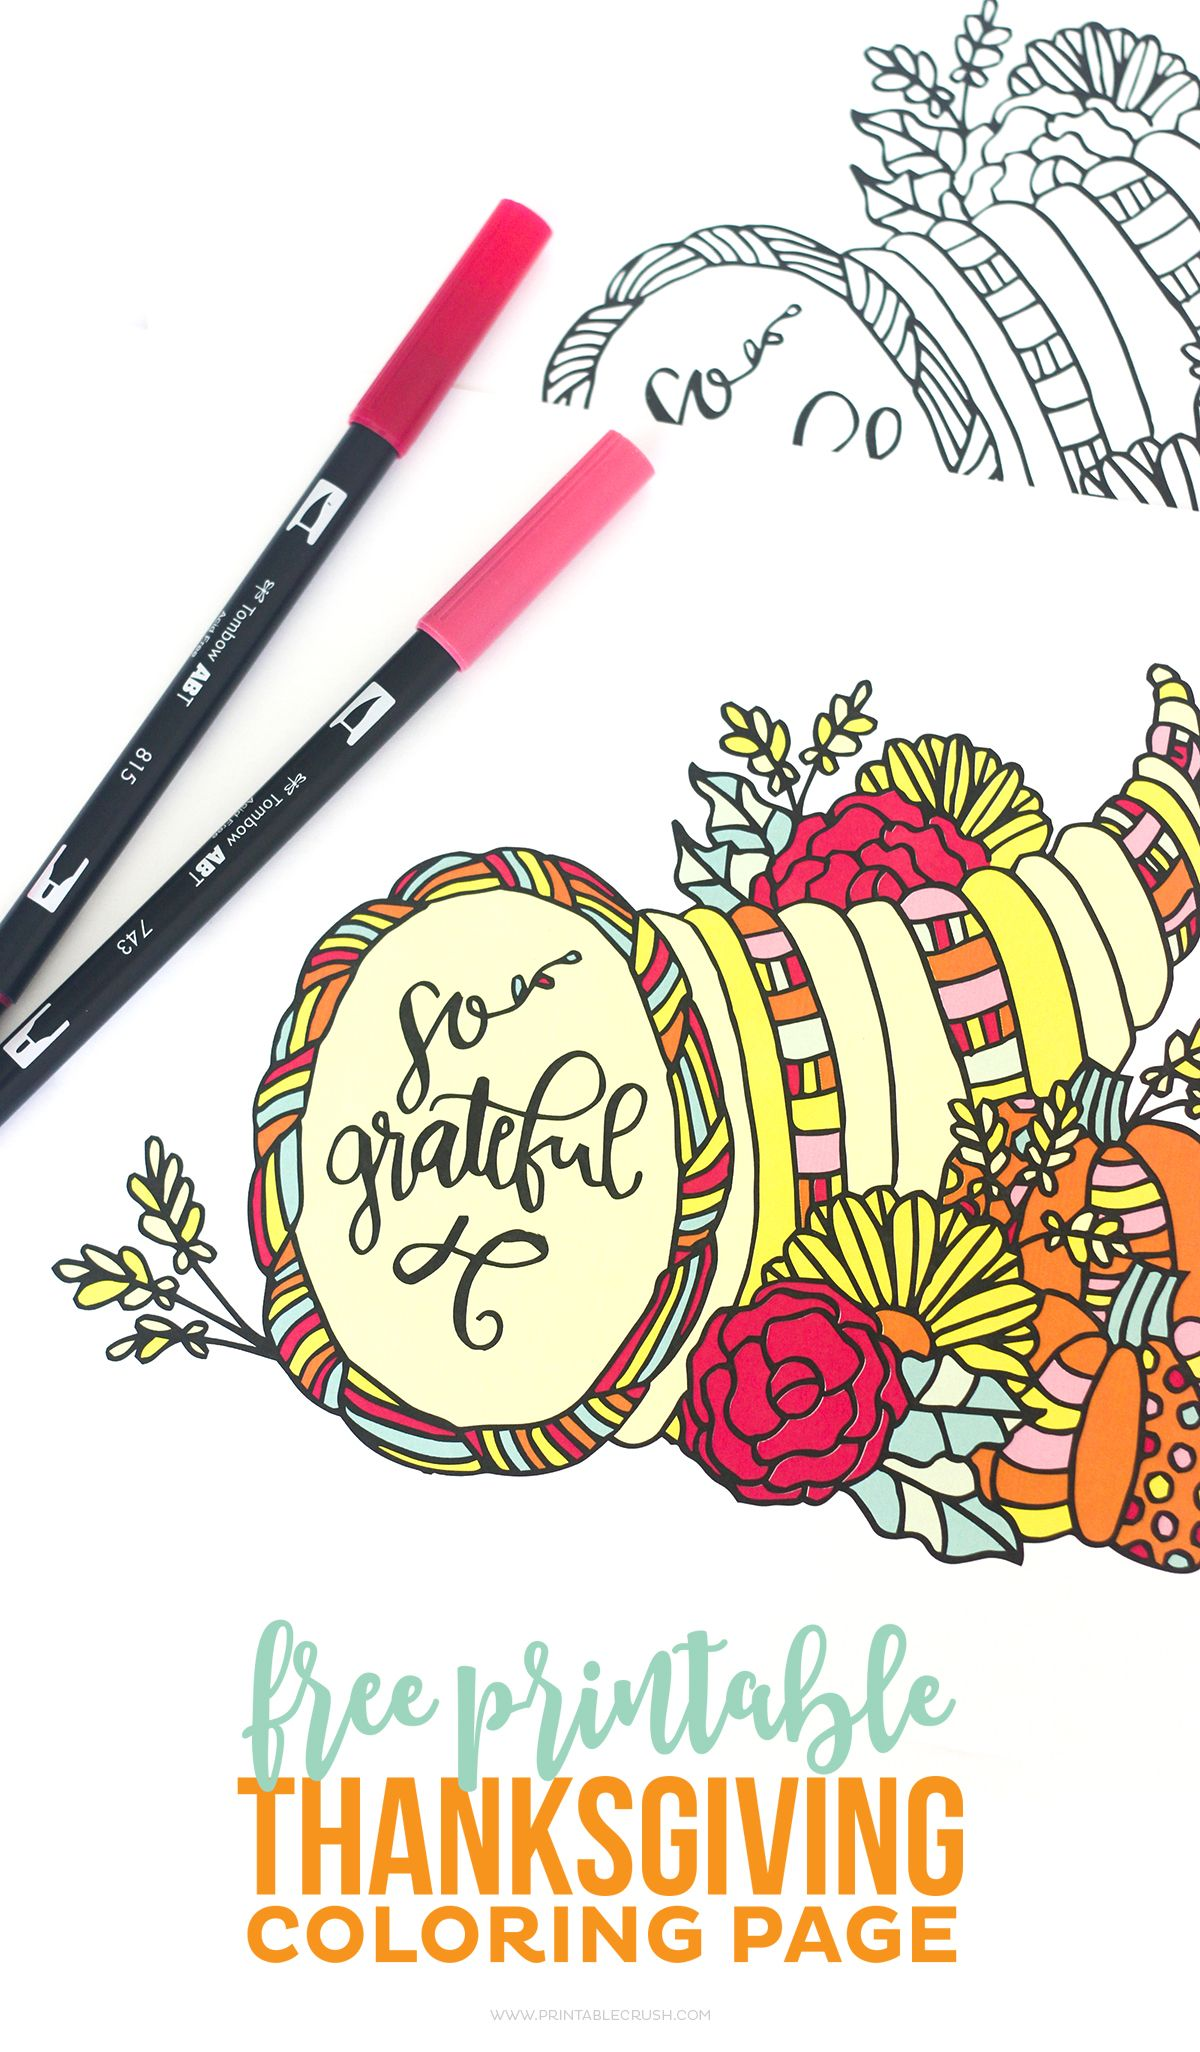 Download This Pretty Thanksgiving Coloring Page For Your Dinner Guests Its A Great Adults And Children